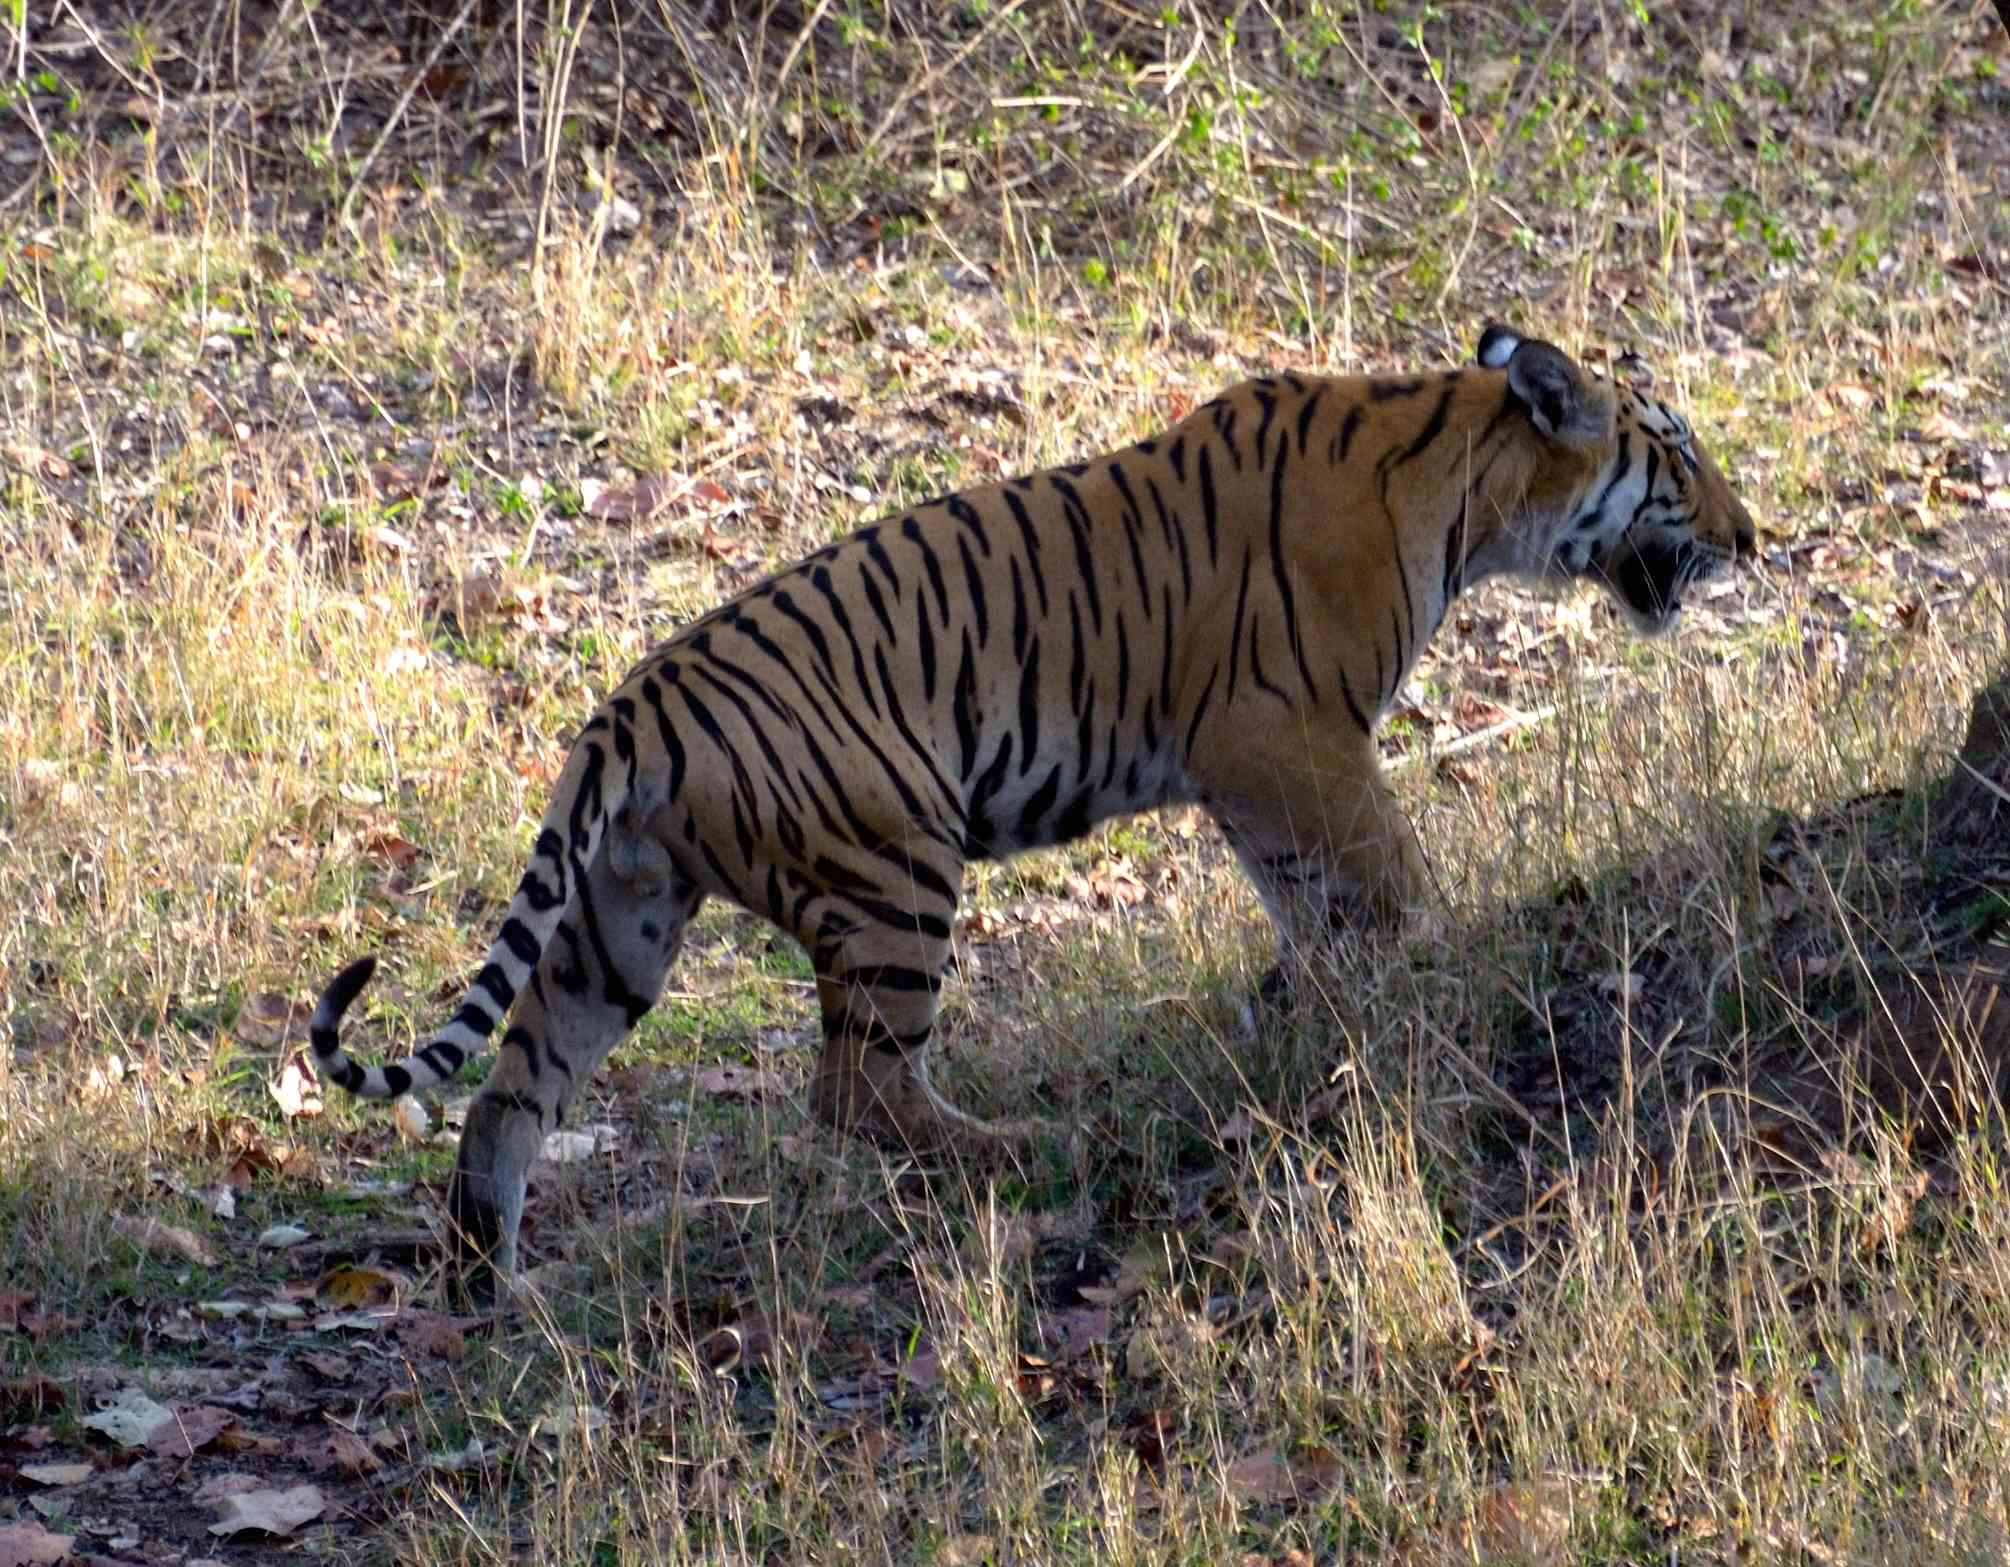 There is little information on the current status of wildlife outside protected areas. Even in those areas, knowledge is restricted mainly to the tiger. (Credit: Wikimedia Commons)